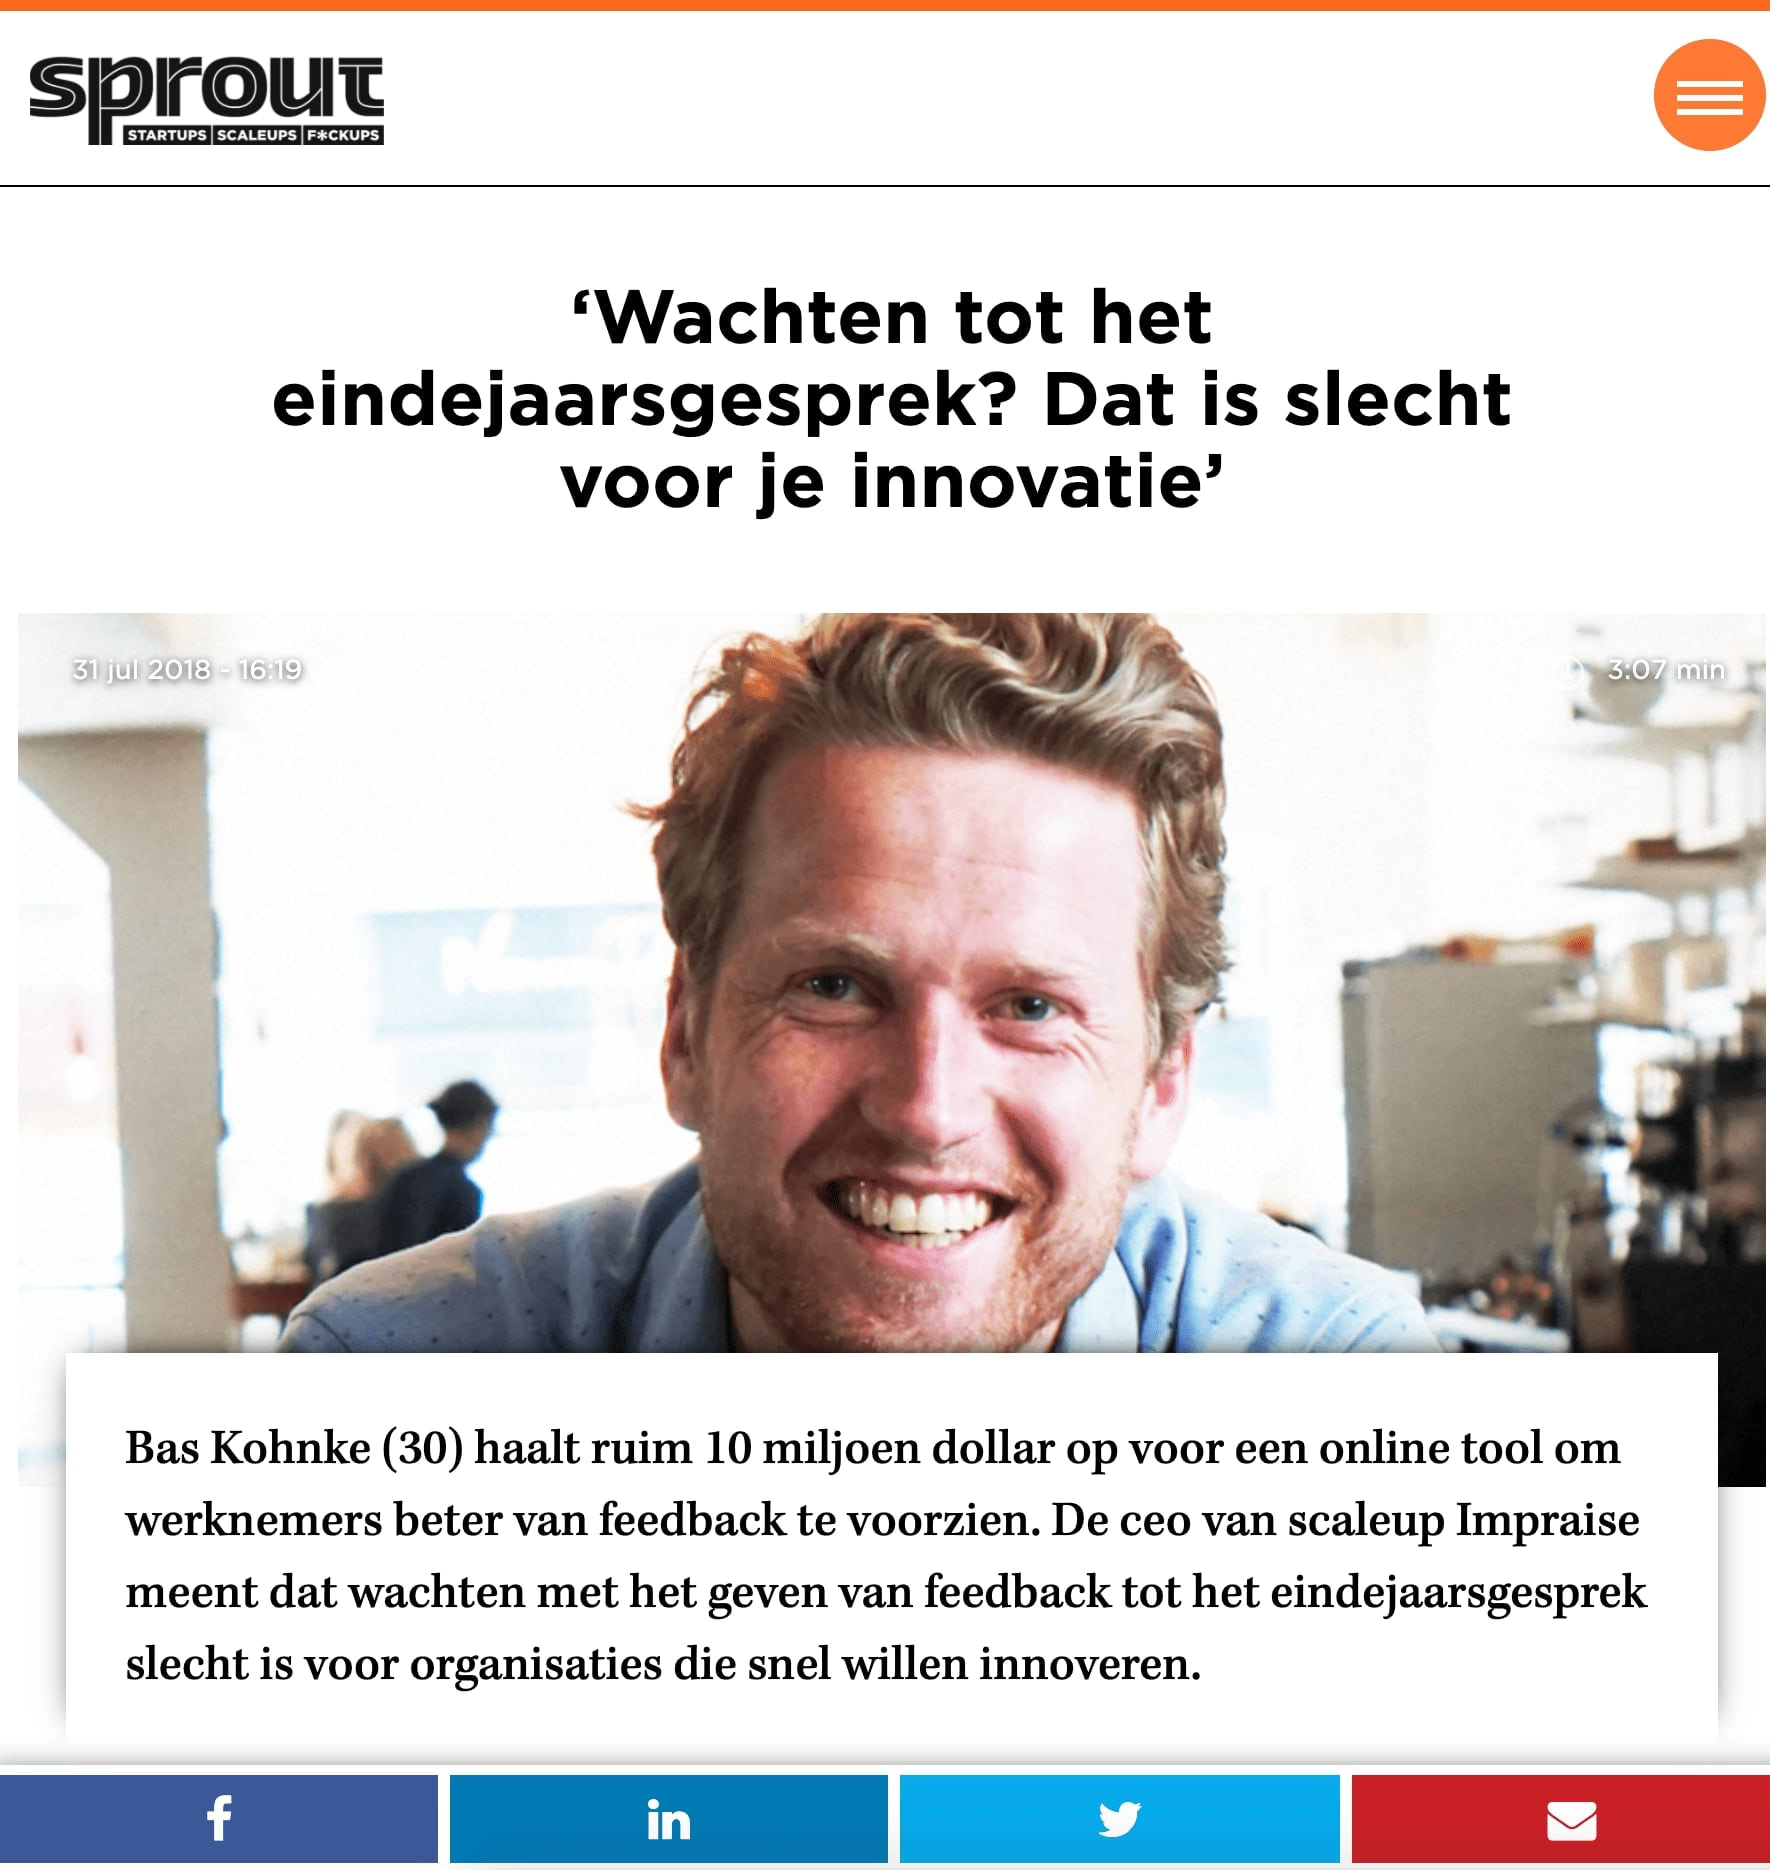 Article published at Sprout thanks to public relations for tech startups in Europe